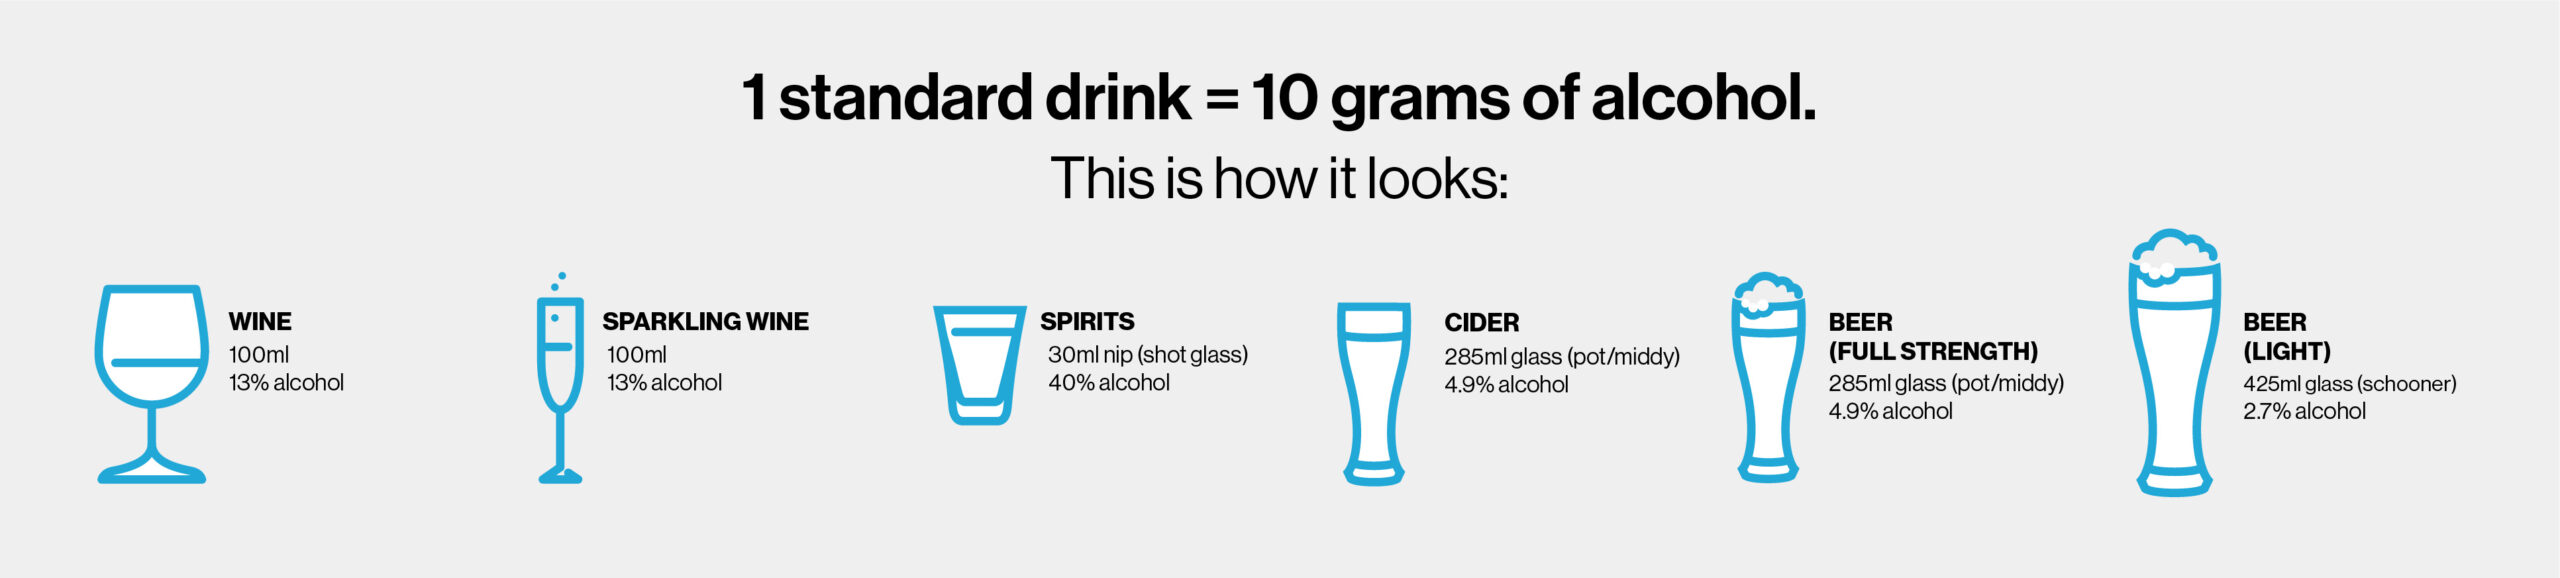 Diagram showing how much is a standard drink of alcohol